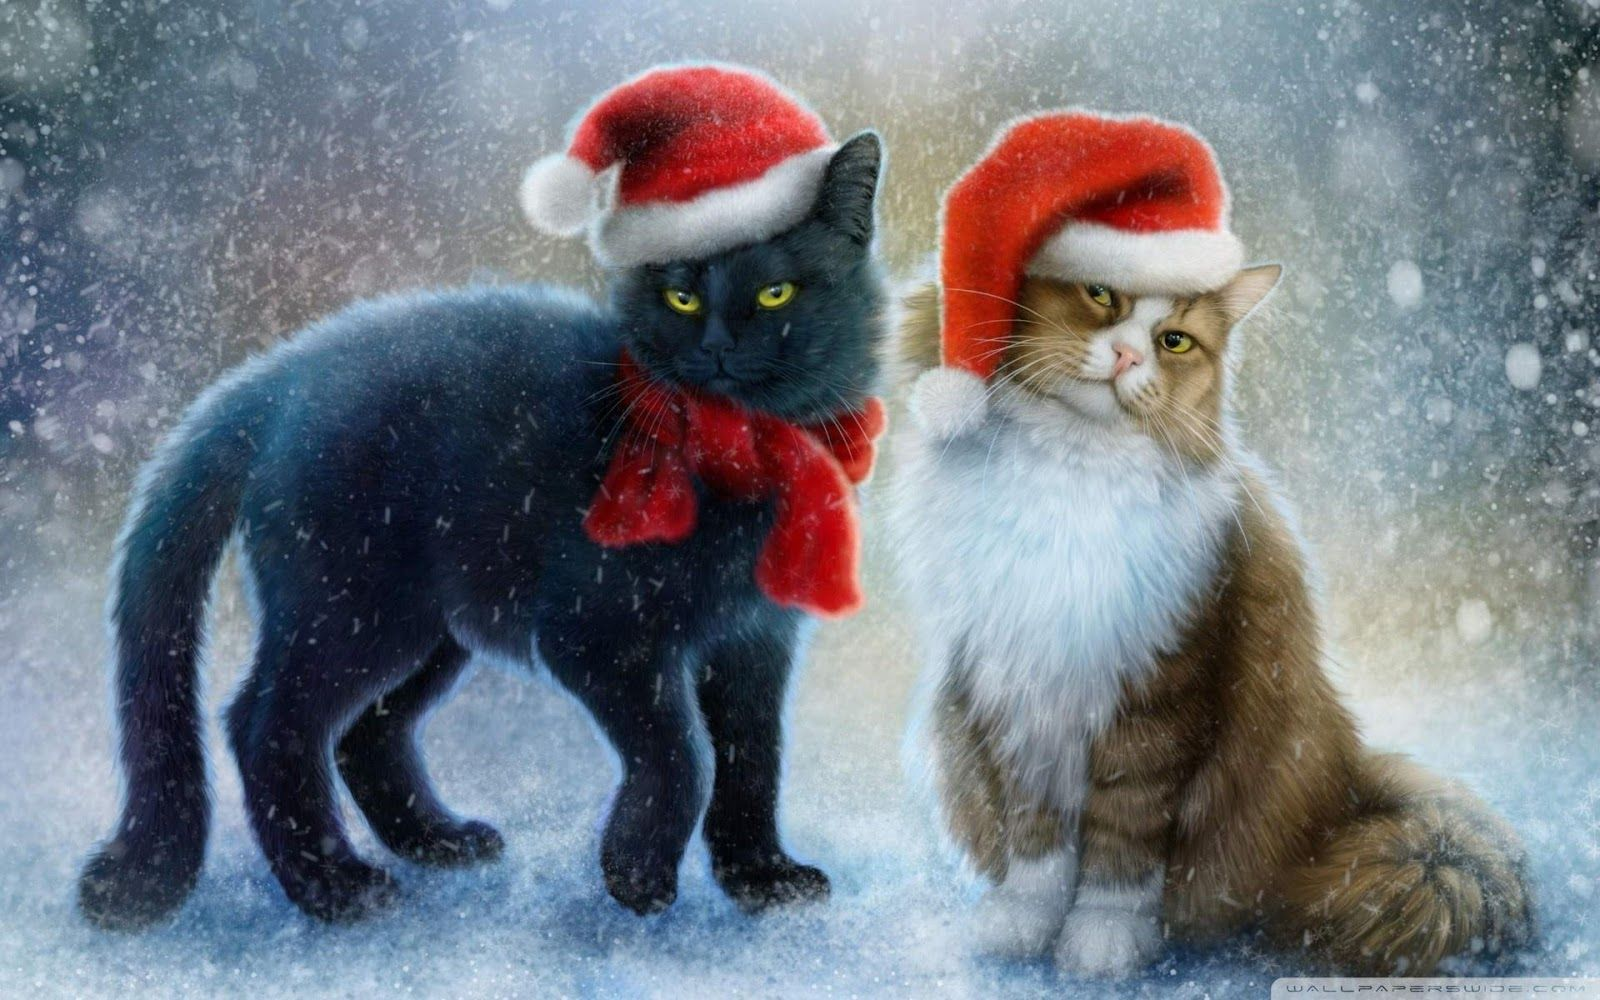 1080p Hd Christmas Cat Wallpaper High Quality Desktop Iphone And Android Background And Wallpap Cat Wallpaper Christmas Cats Christmas Photography Backdrops